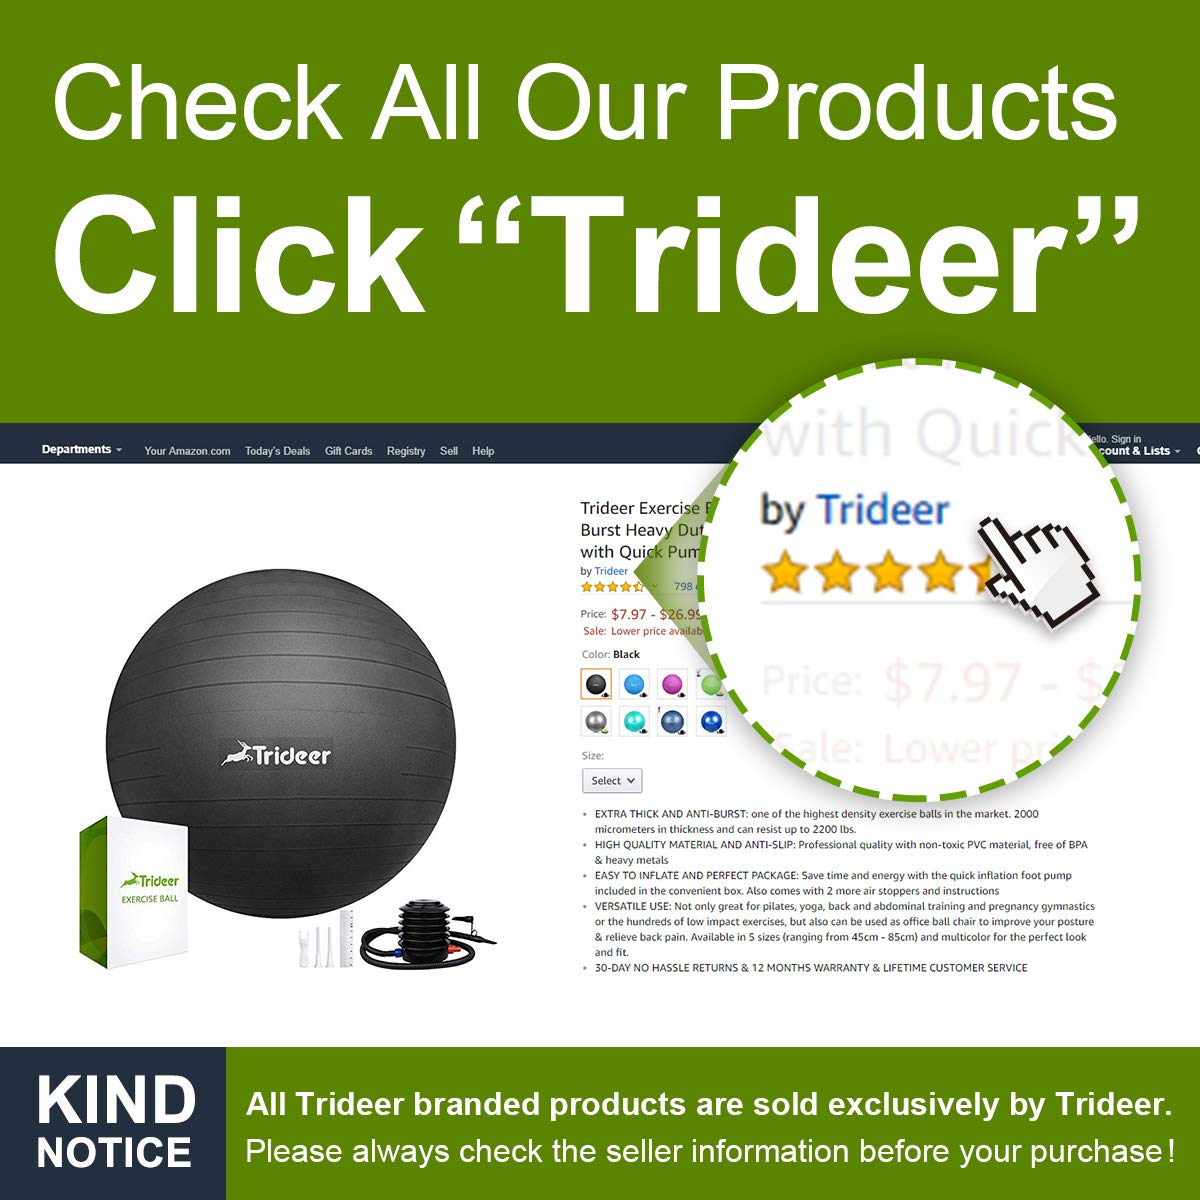 Trideer Exercise Ball (Multiple Color), Yoga Ball, Birthing Ball with Quick Pump, Anti-Burst & Extra Thick, Heavy Duty Ball Chair, Stability Ball Supports 2200lbs by Trideer (Image #8)